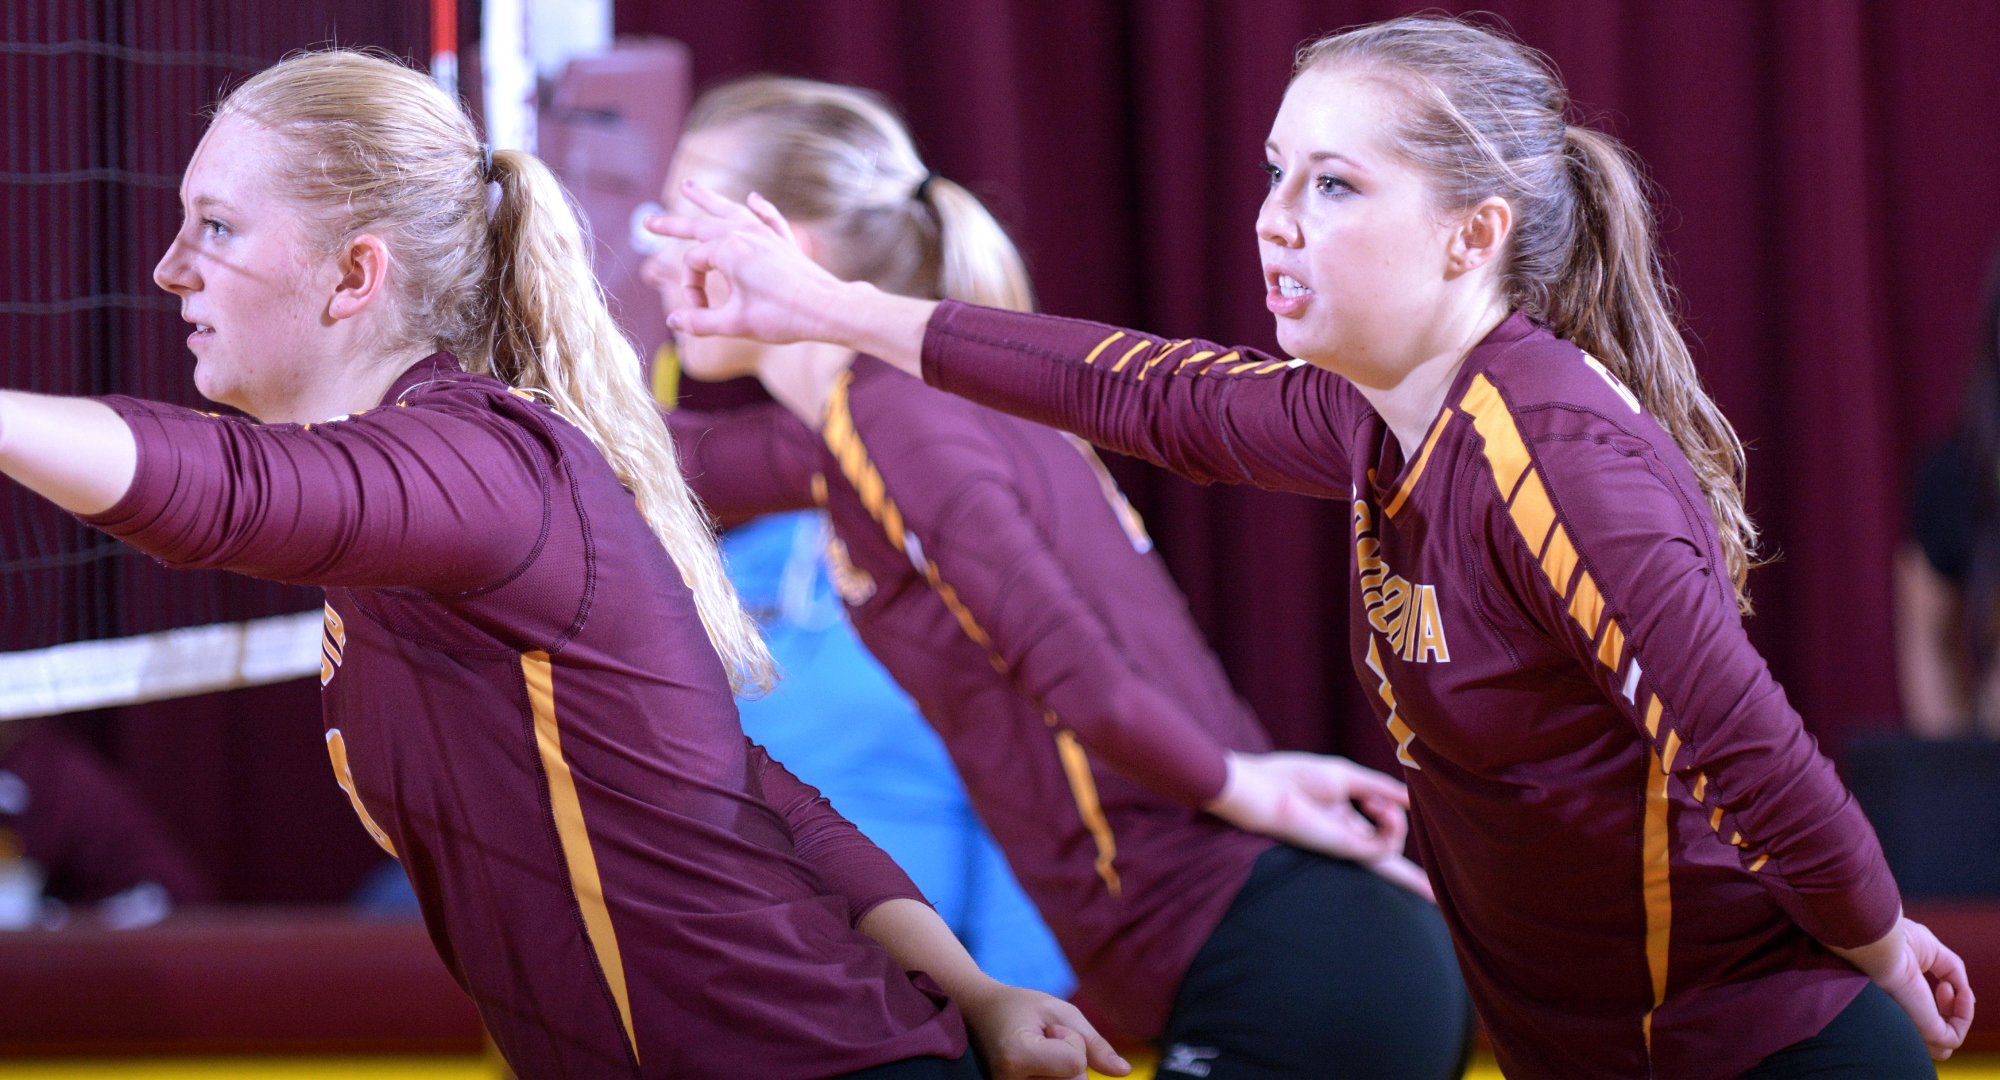 Brianna Carney (L) and Haley Cuppett combined for 22 kills in the Cobbers' match with St. Olaf.